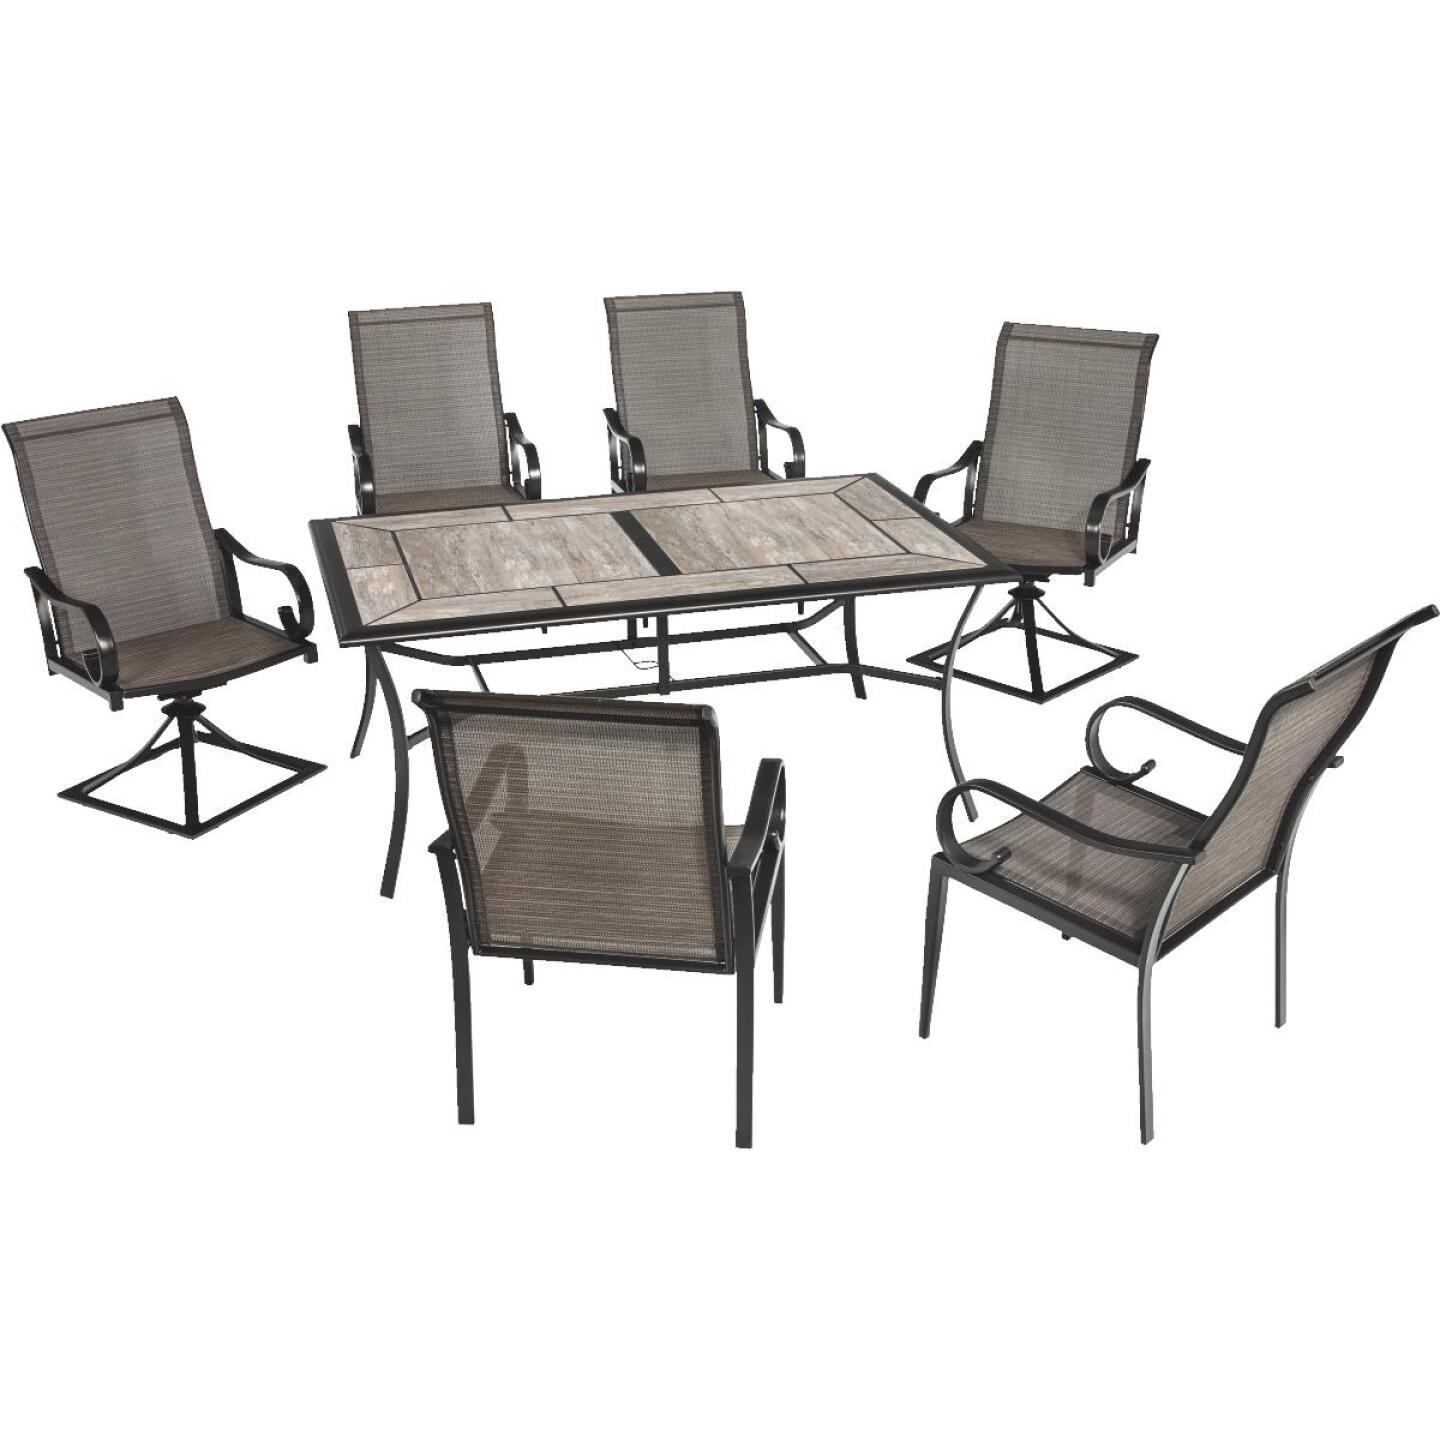 Outdoor Expressions Berkshire 7-Piece Dining Set Image 203